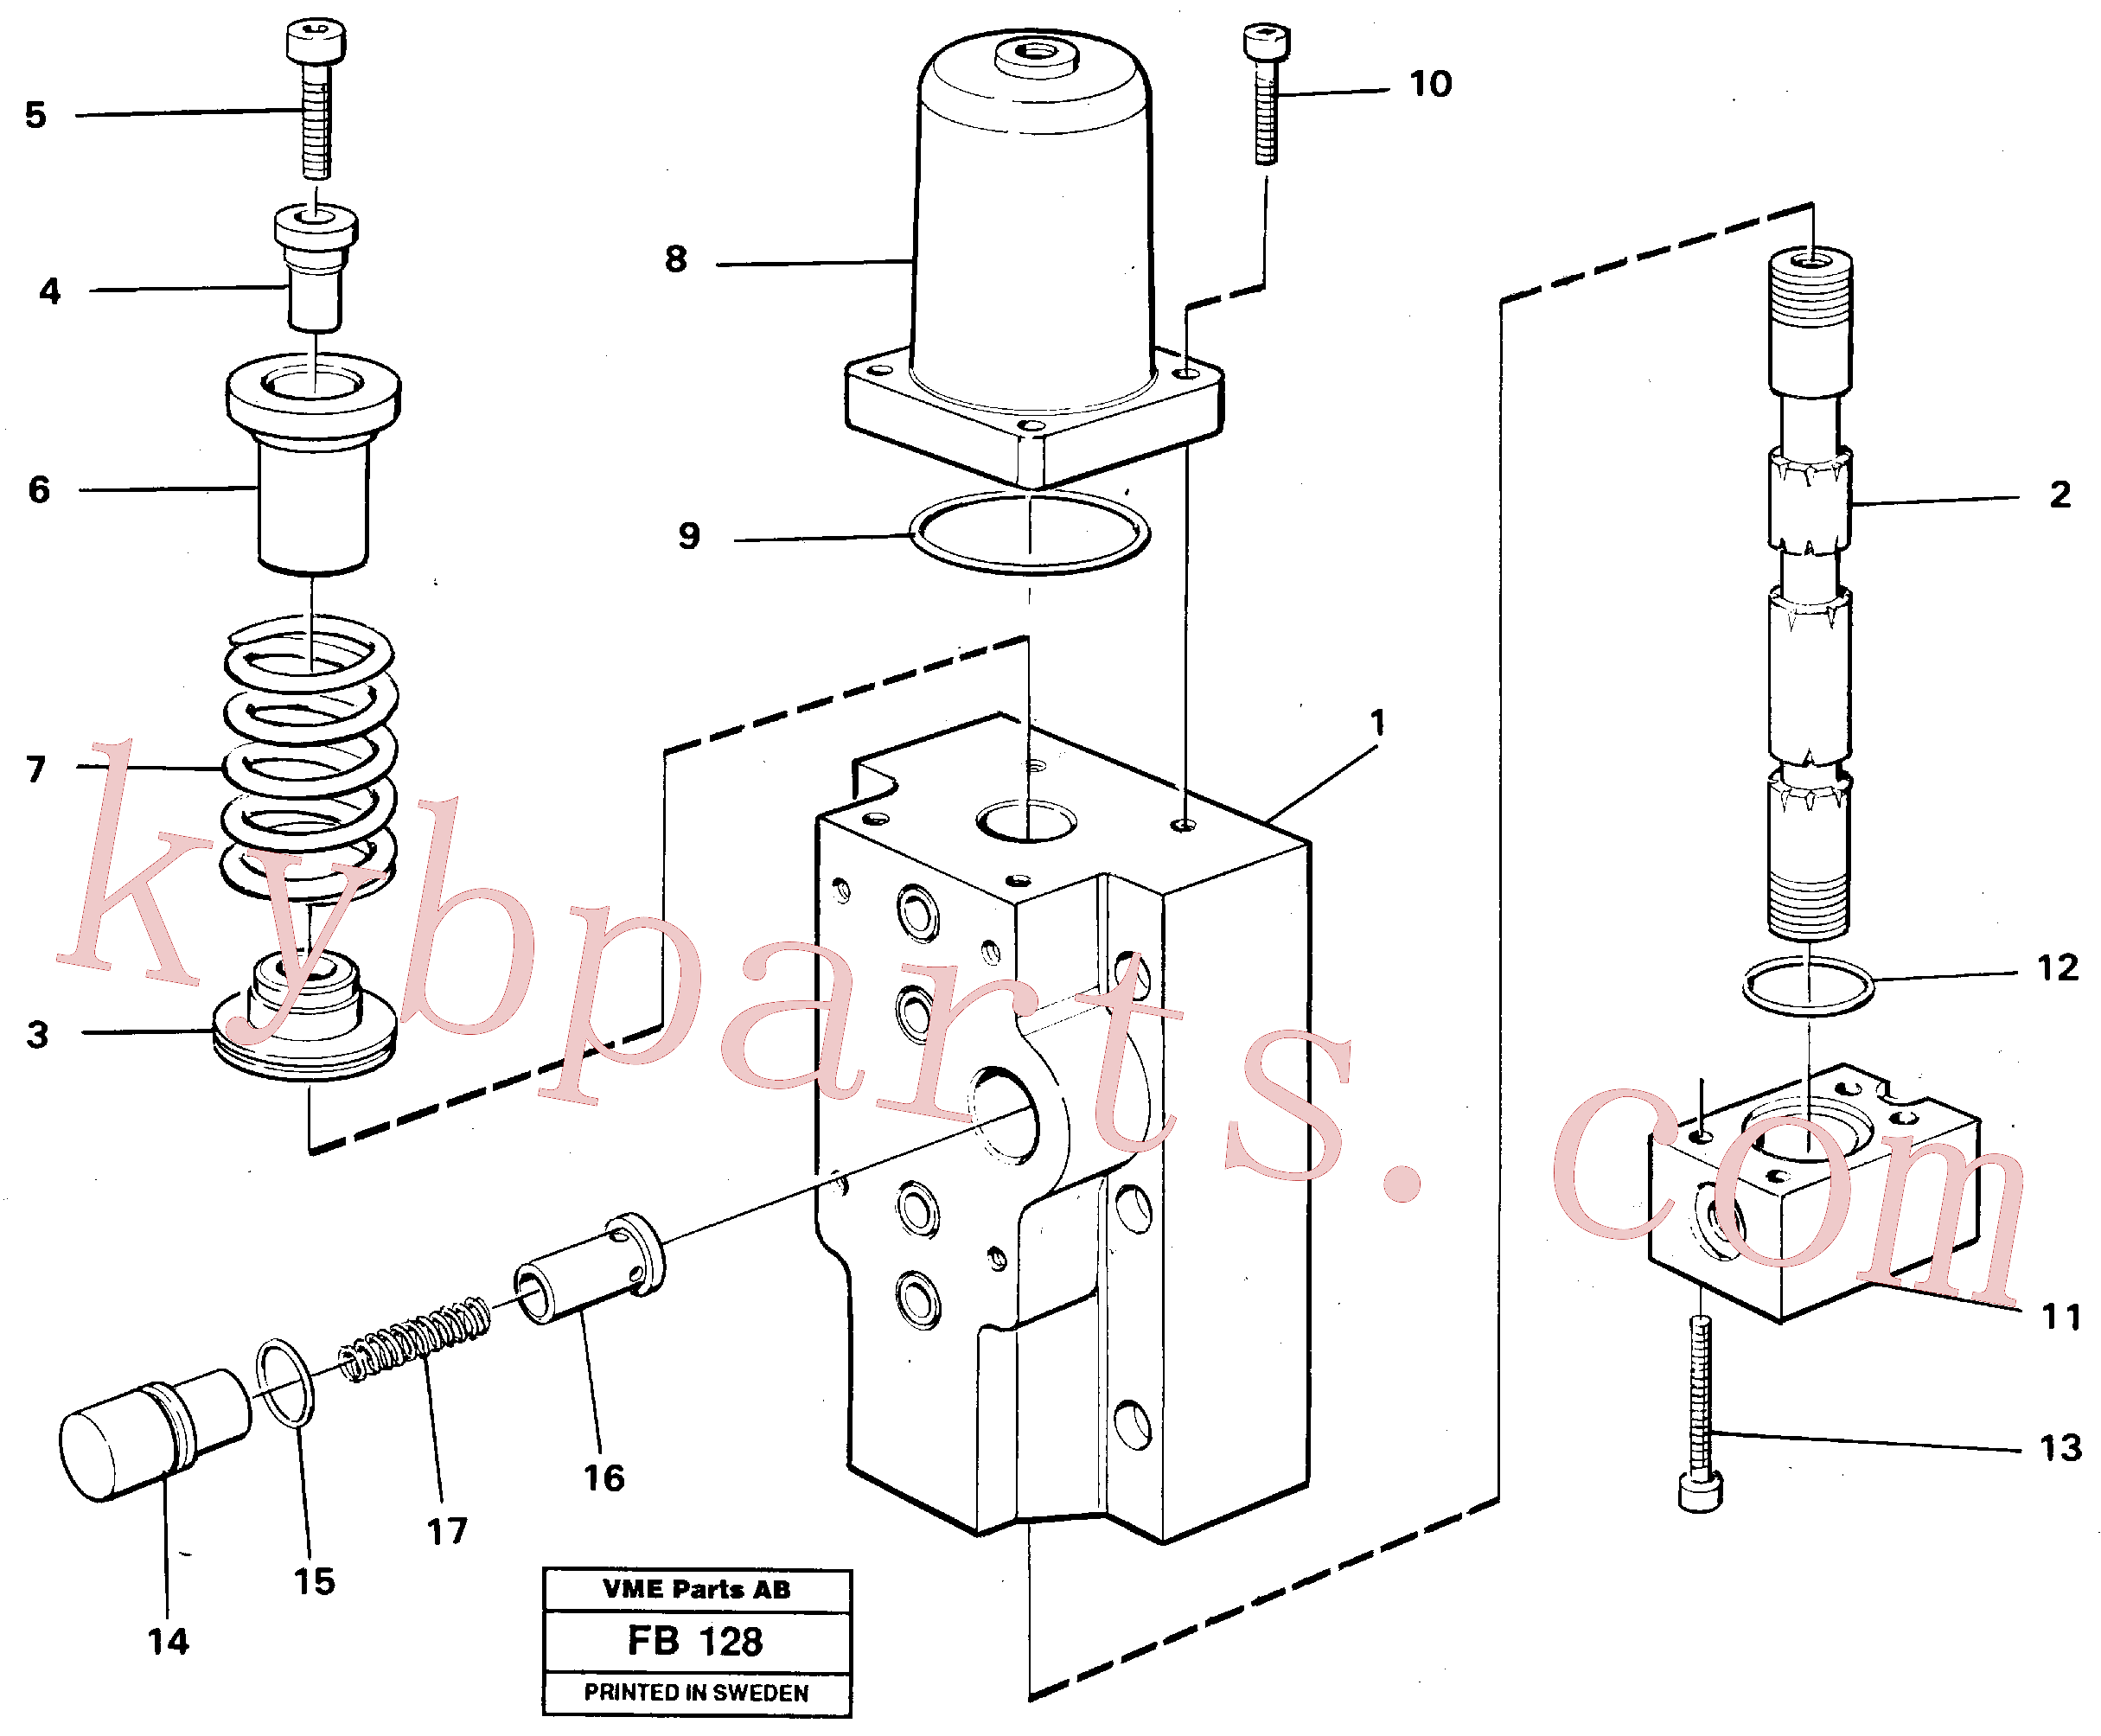 VOE14252112 for Volvo Four-way valves Primary(FB128 assembly)